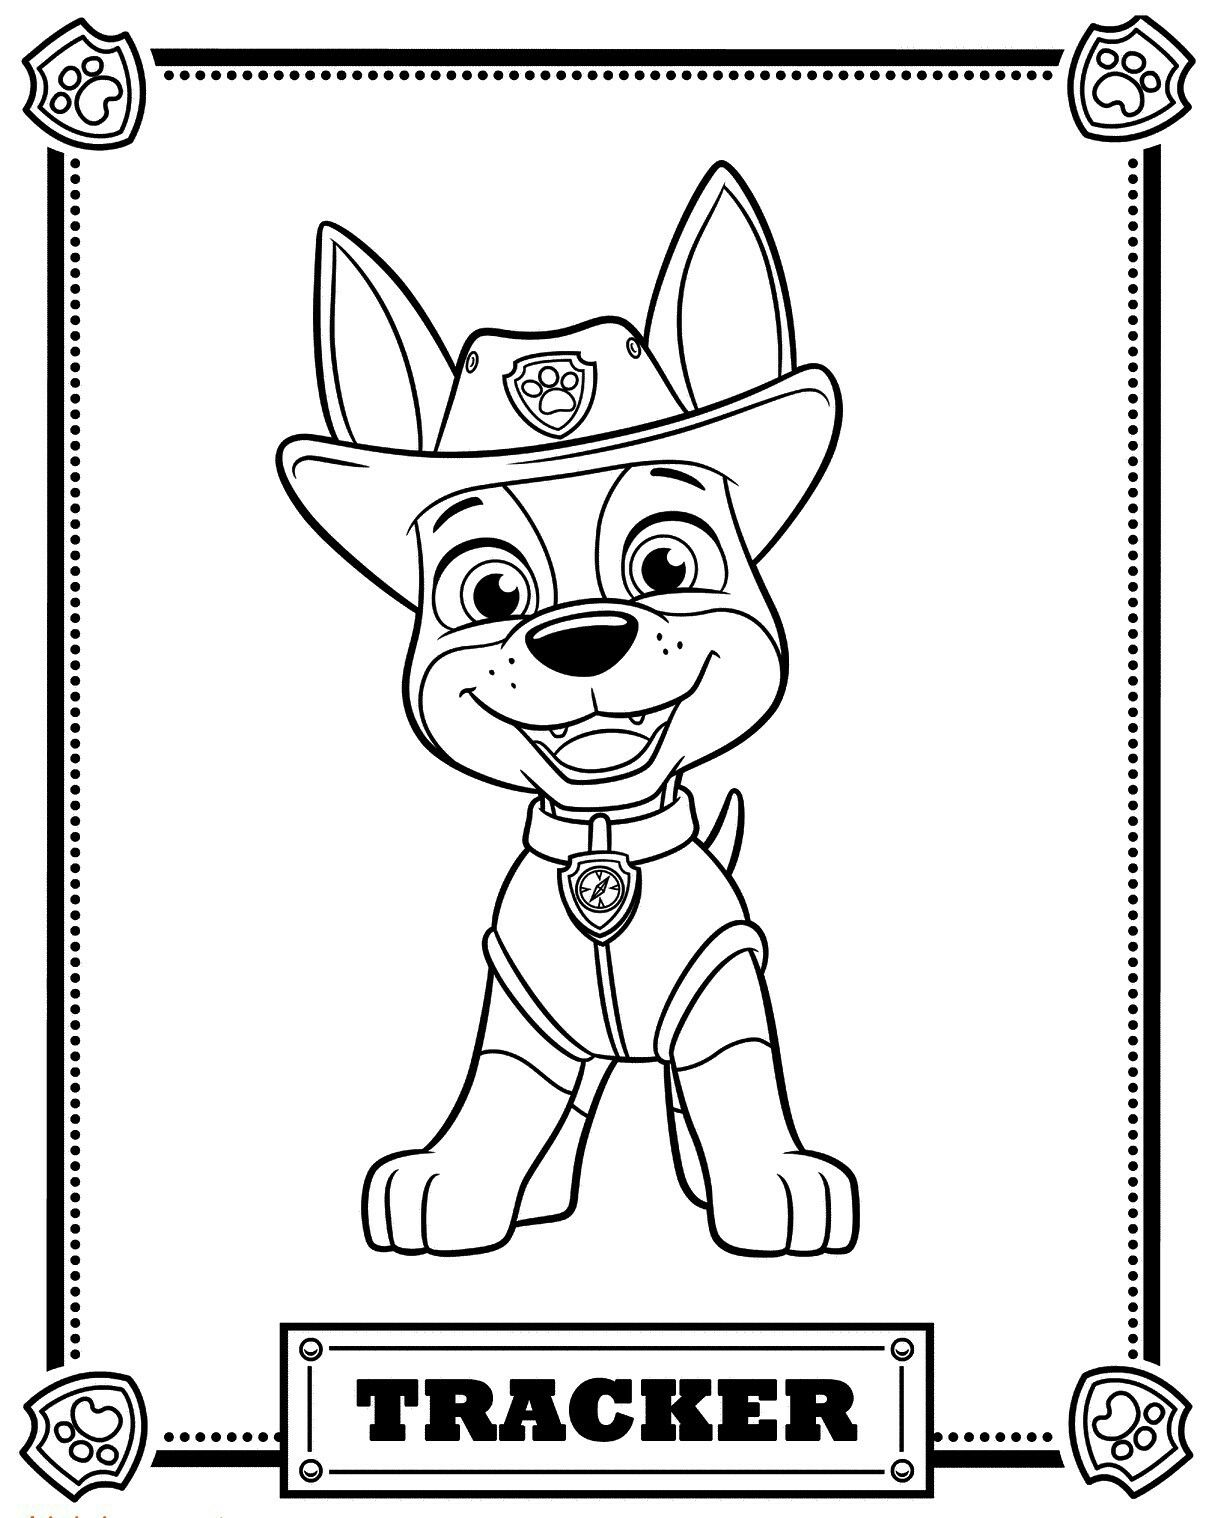 Tracker paw patrol front | Coloring Pages | Pinterest | Patrulla ...